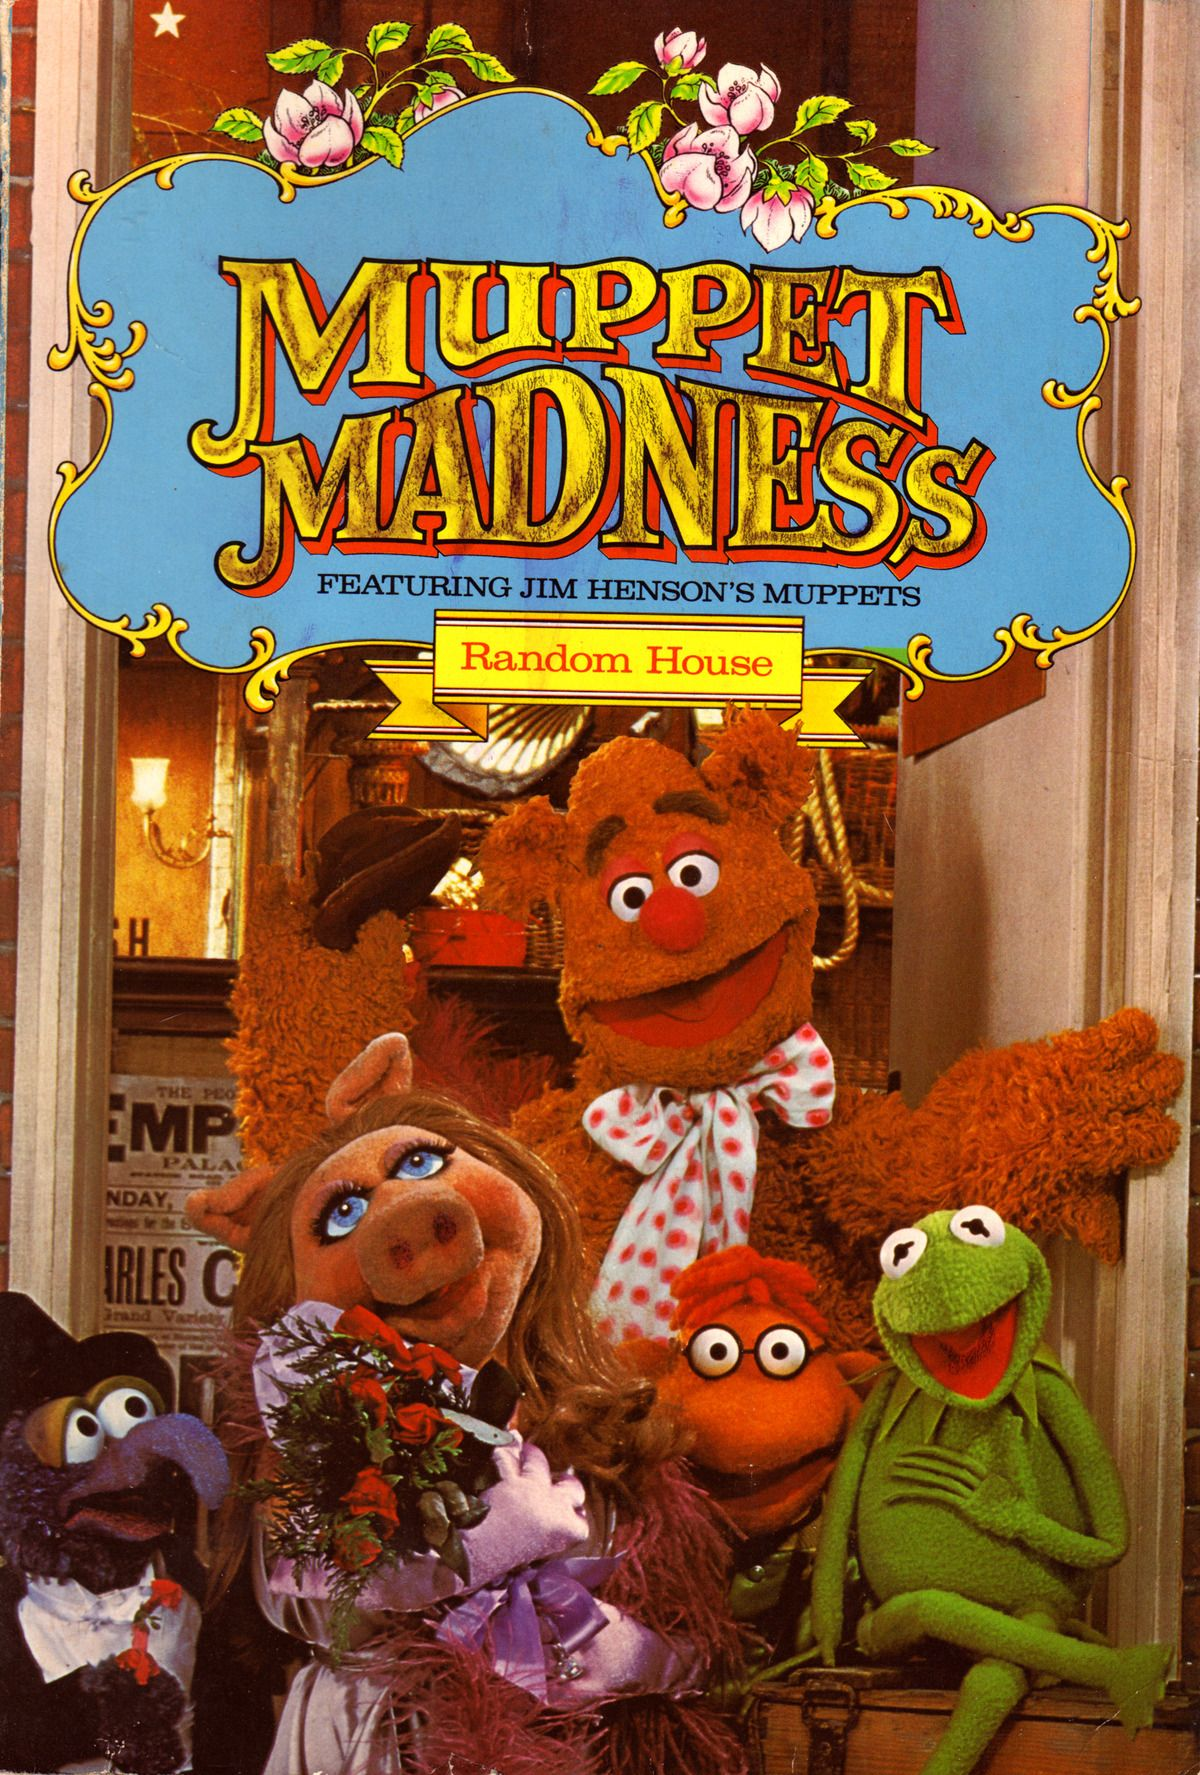 Pin By Luxokermit On Jim Henson Muppets The Muppets Characters The Muppet Show